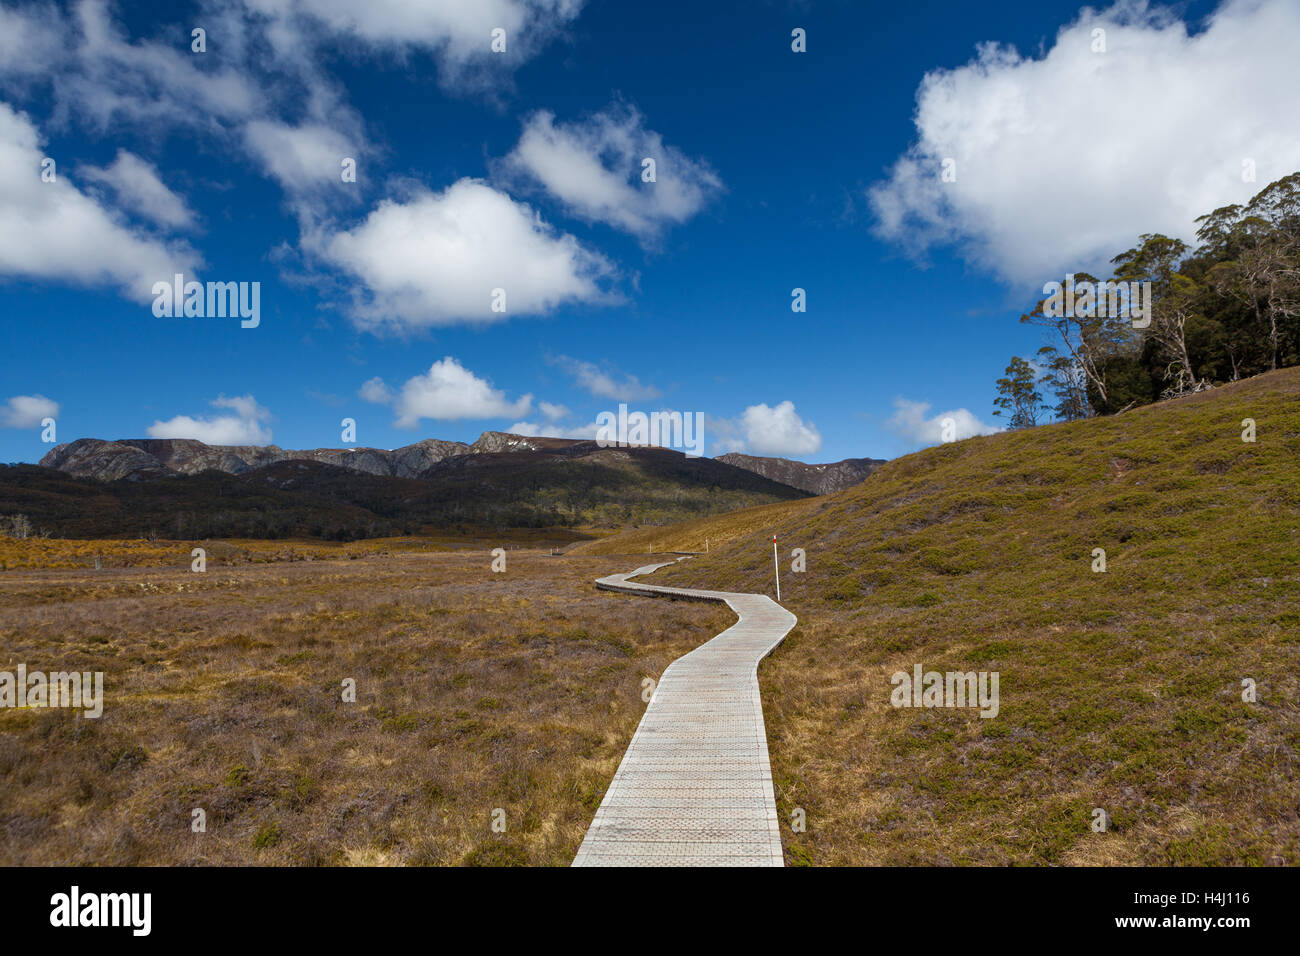 Wooden winding boardwalk in highlands of Cradle Mountain National park on bright sunny day. Tasmania, Australia - Stock Image